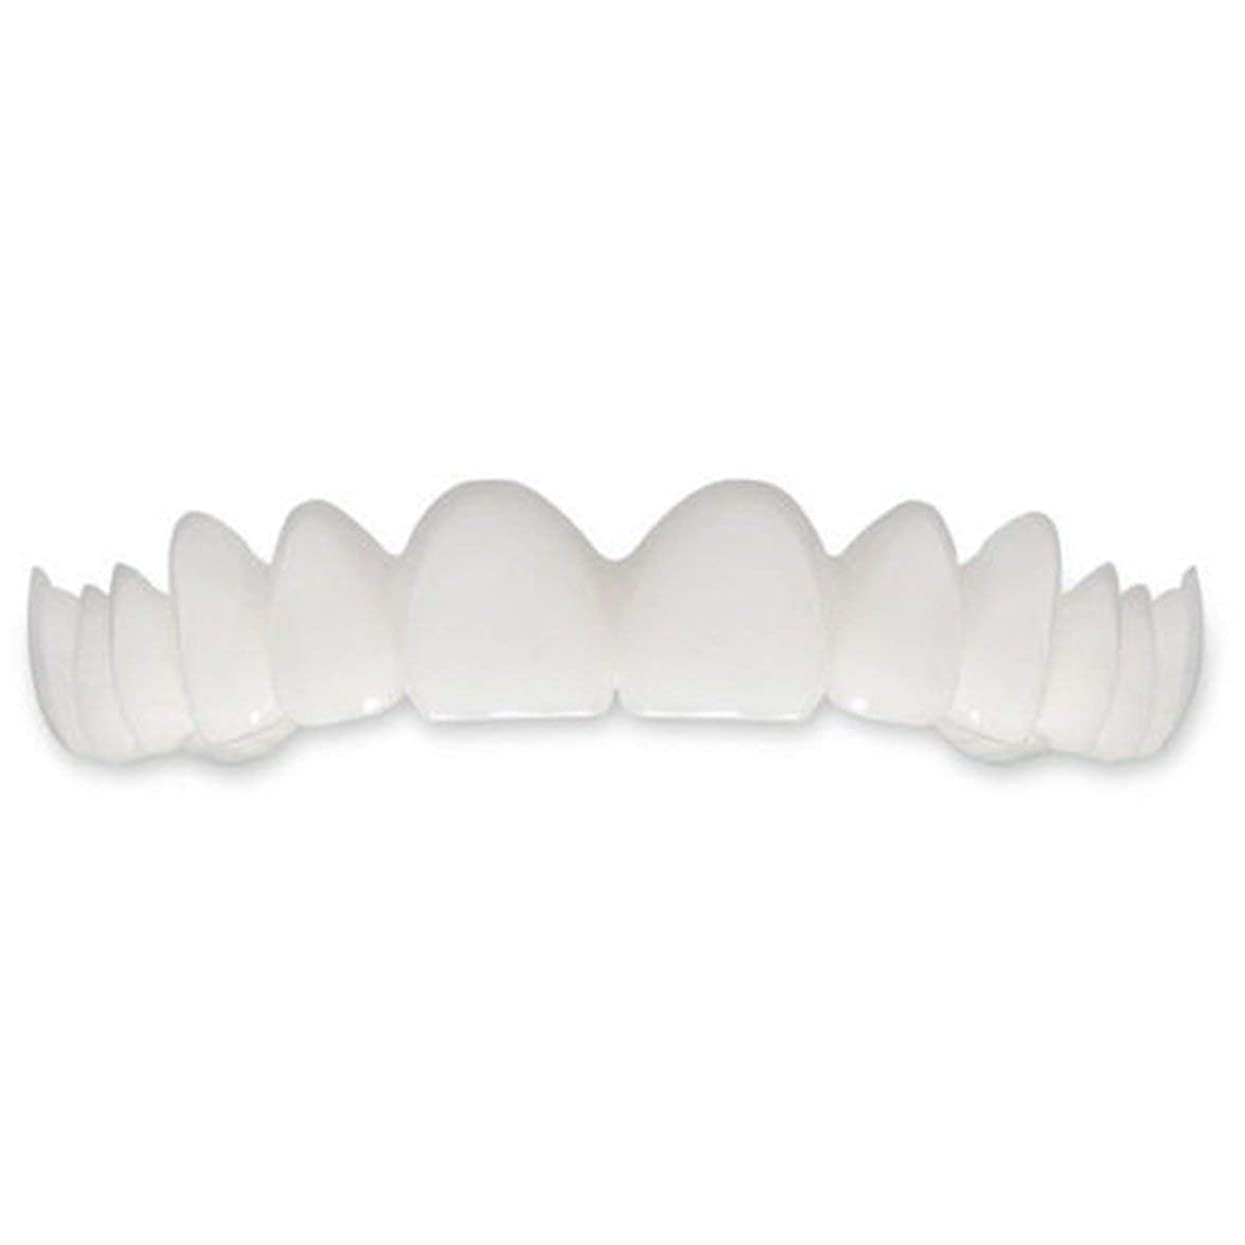 造船テザーくるくるTooth Instant Perfect Smile Flex Teeth Whitening Smile False Teeth Cover-ホワイト